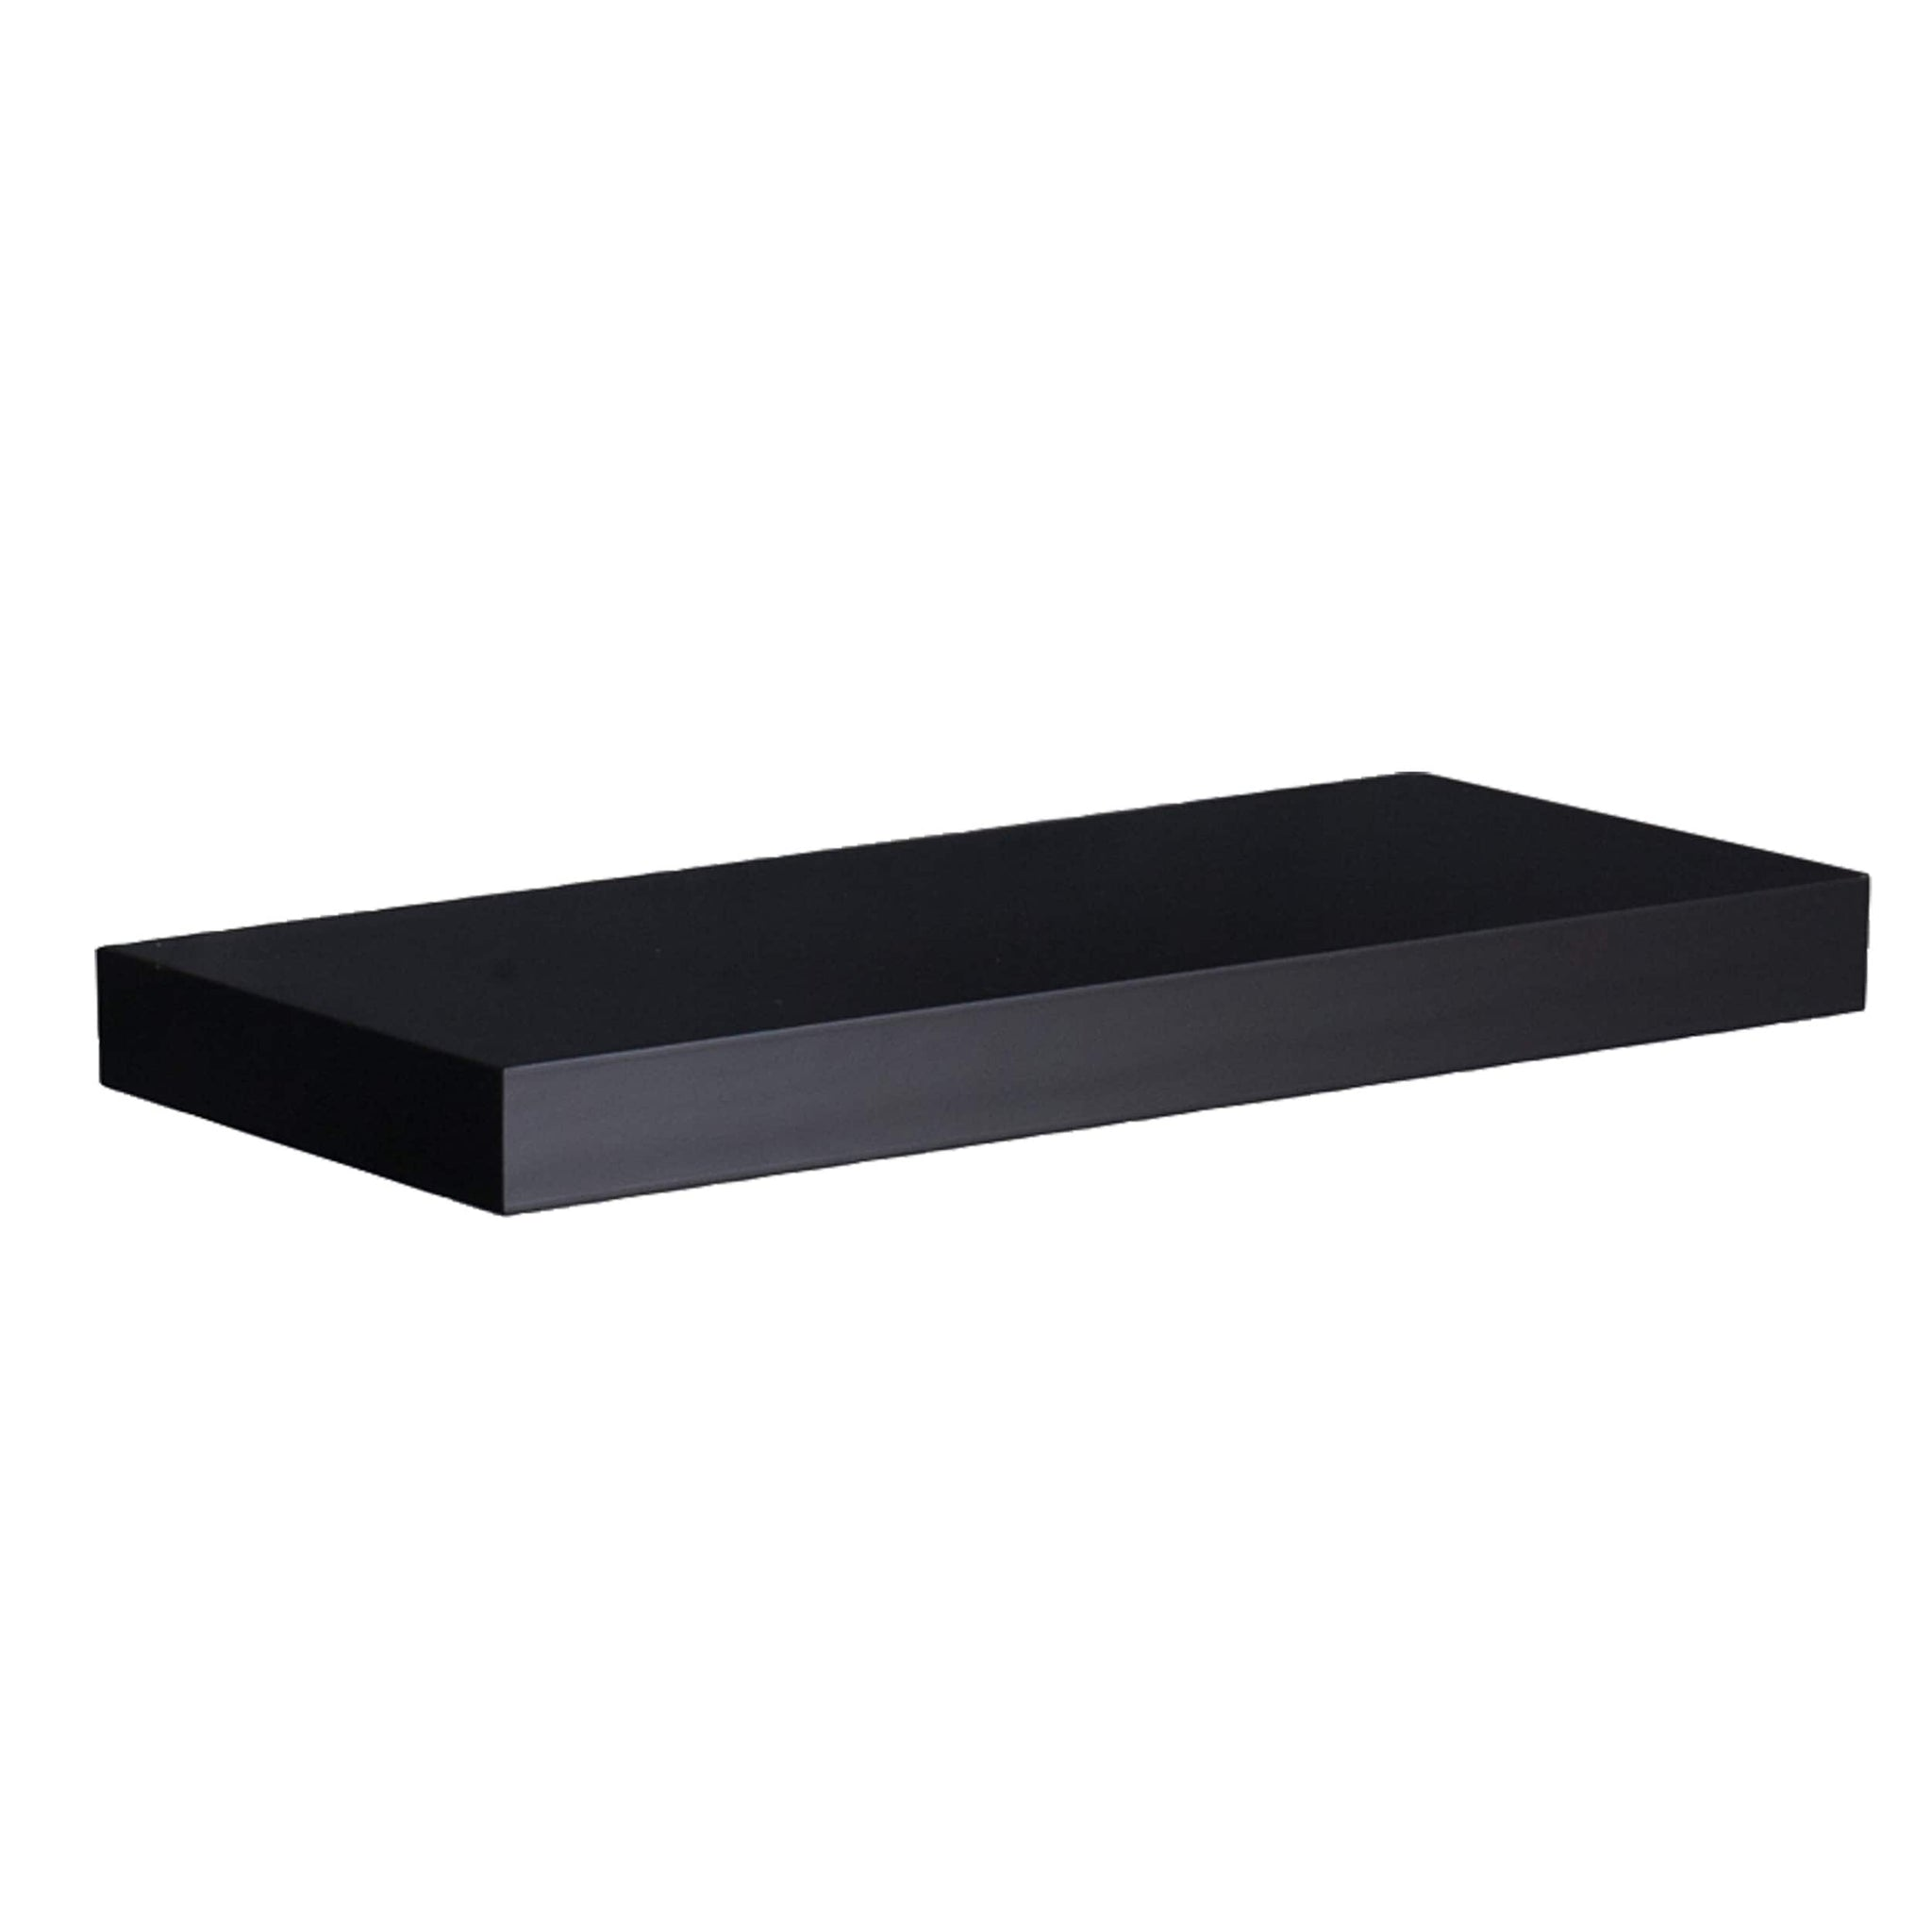 24-inch Black Laminated Floating Shelf